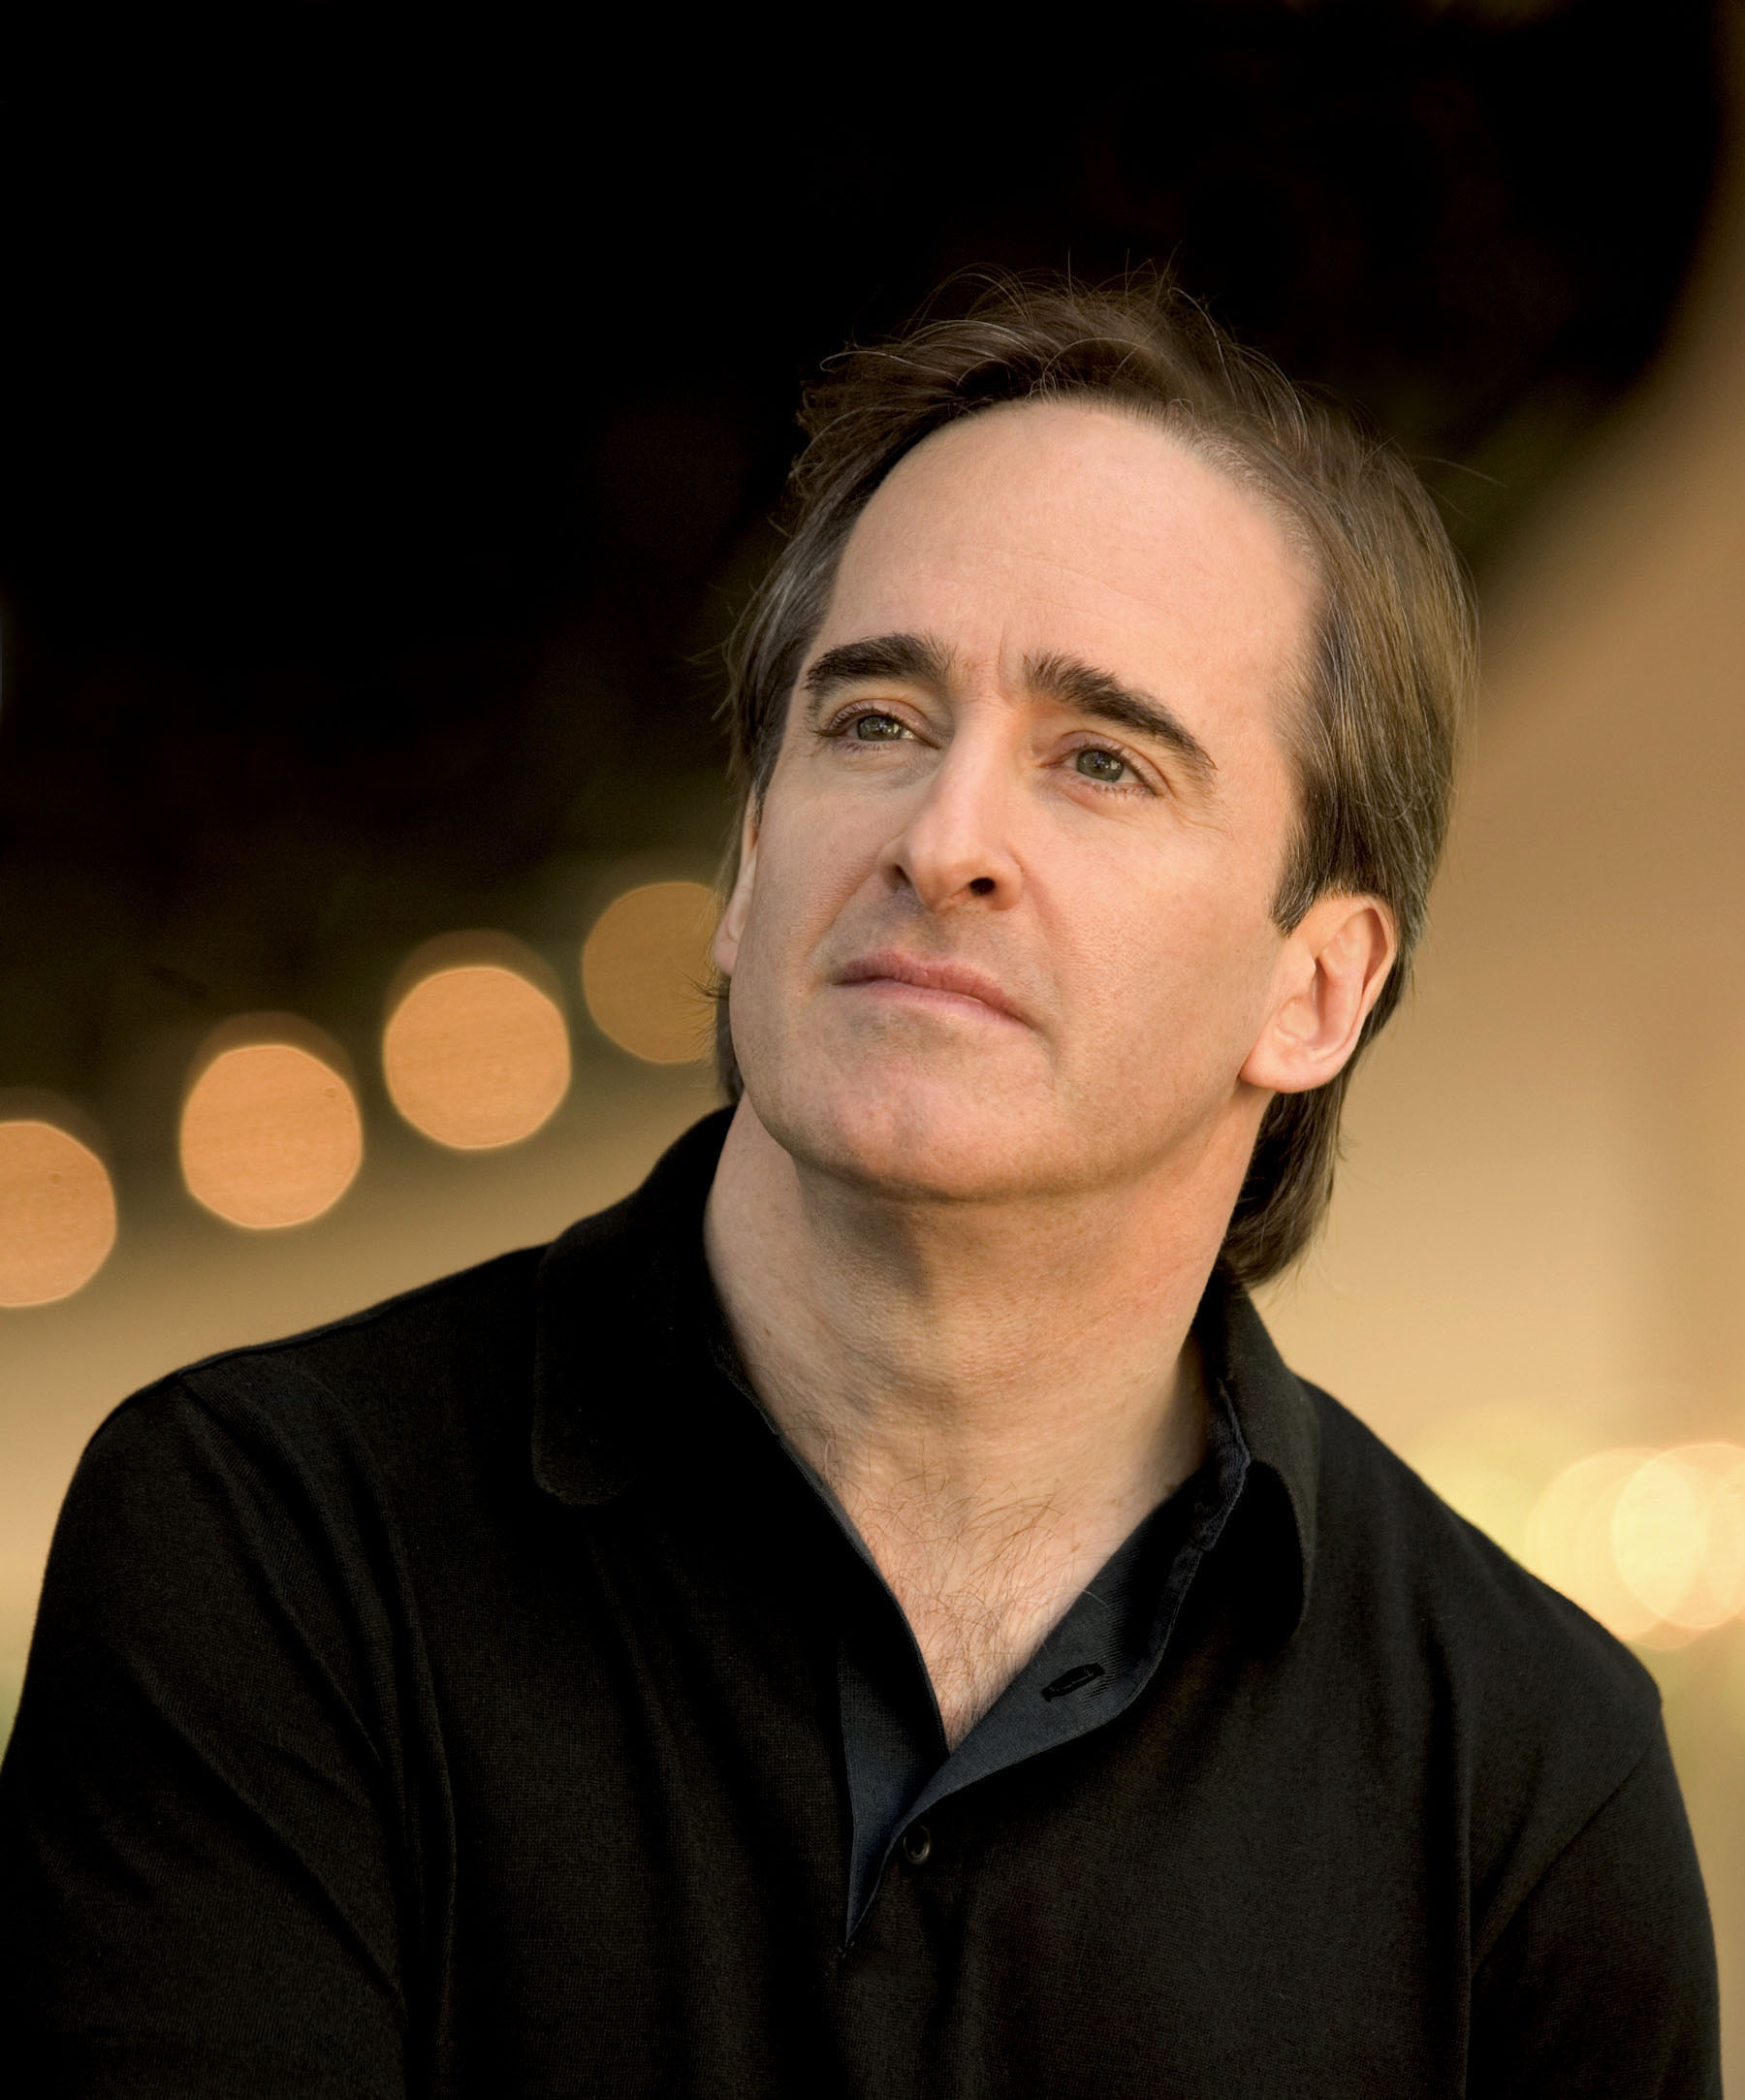 James Conlon, one of today's most versatile and respected conductors. Music director of the LA Opera, Ravinia Festival, and Cincinnati May Festival.